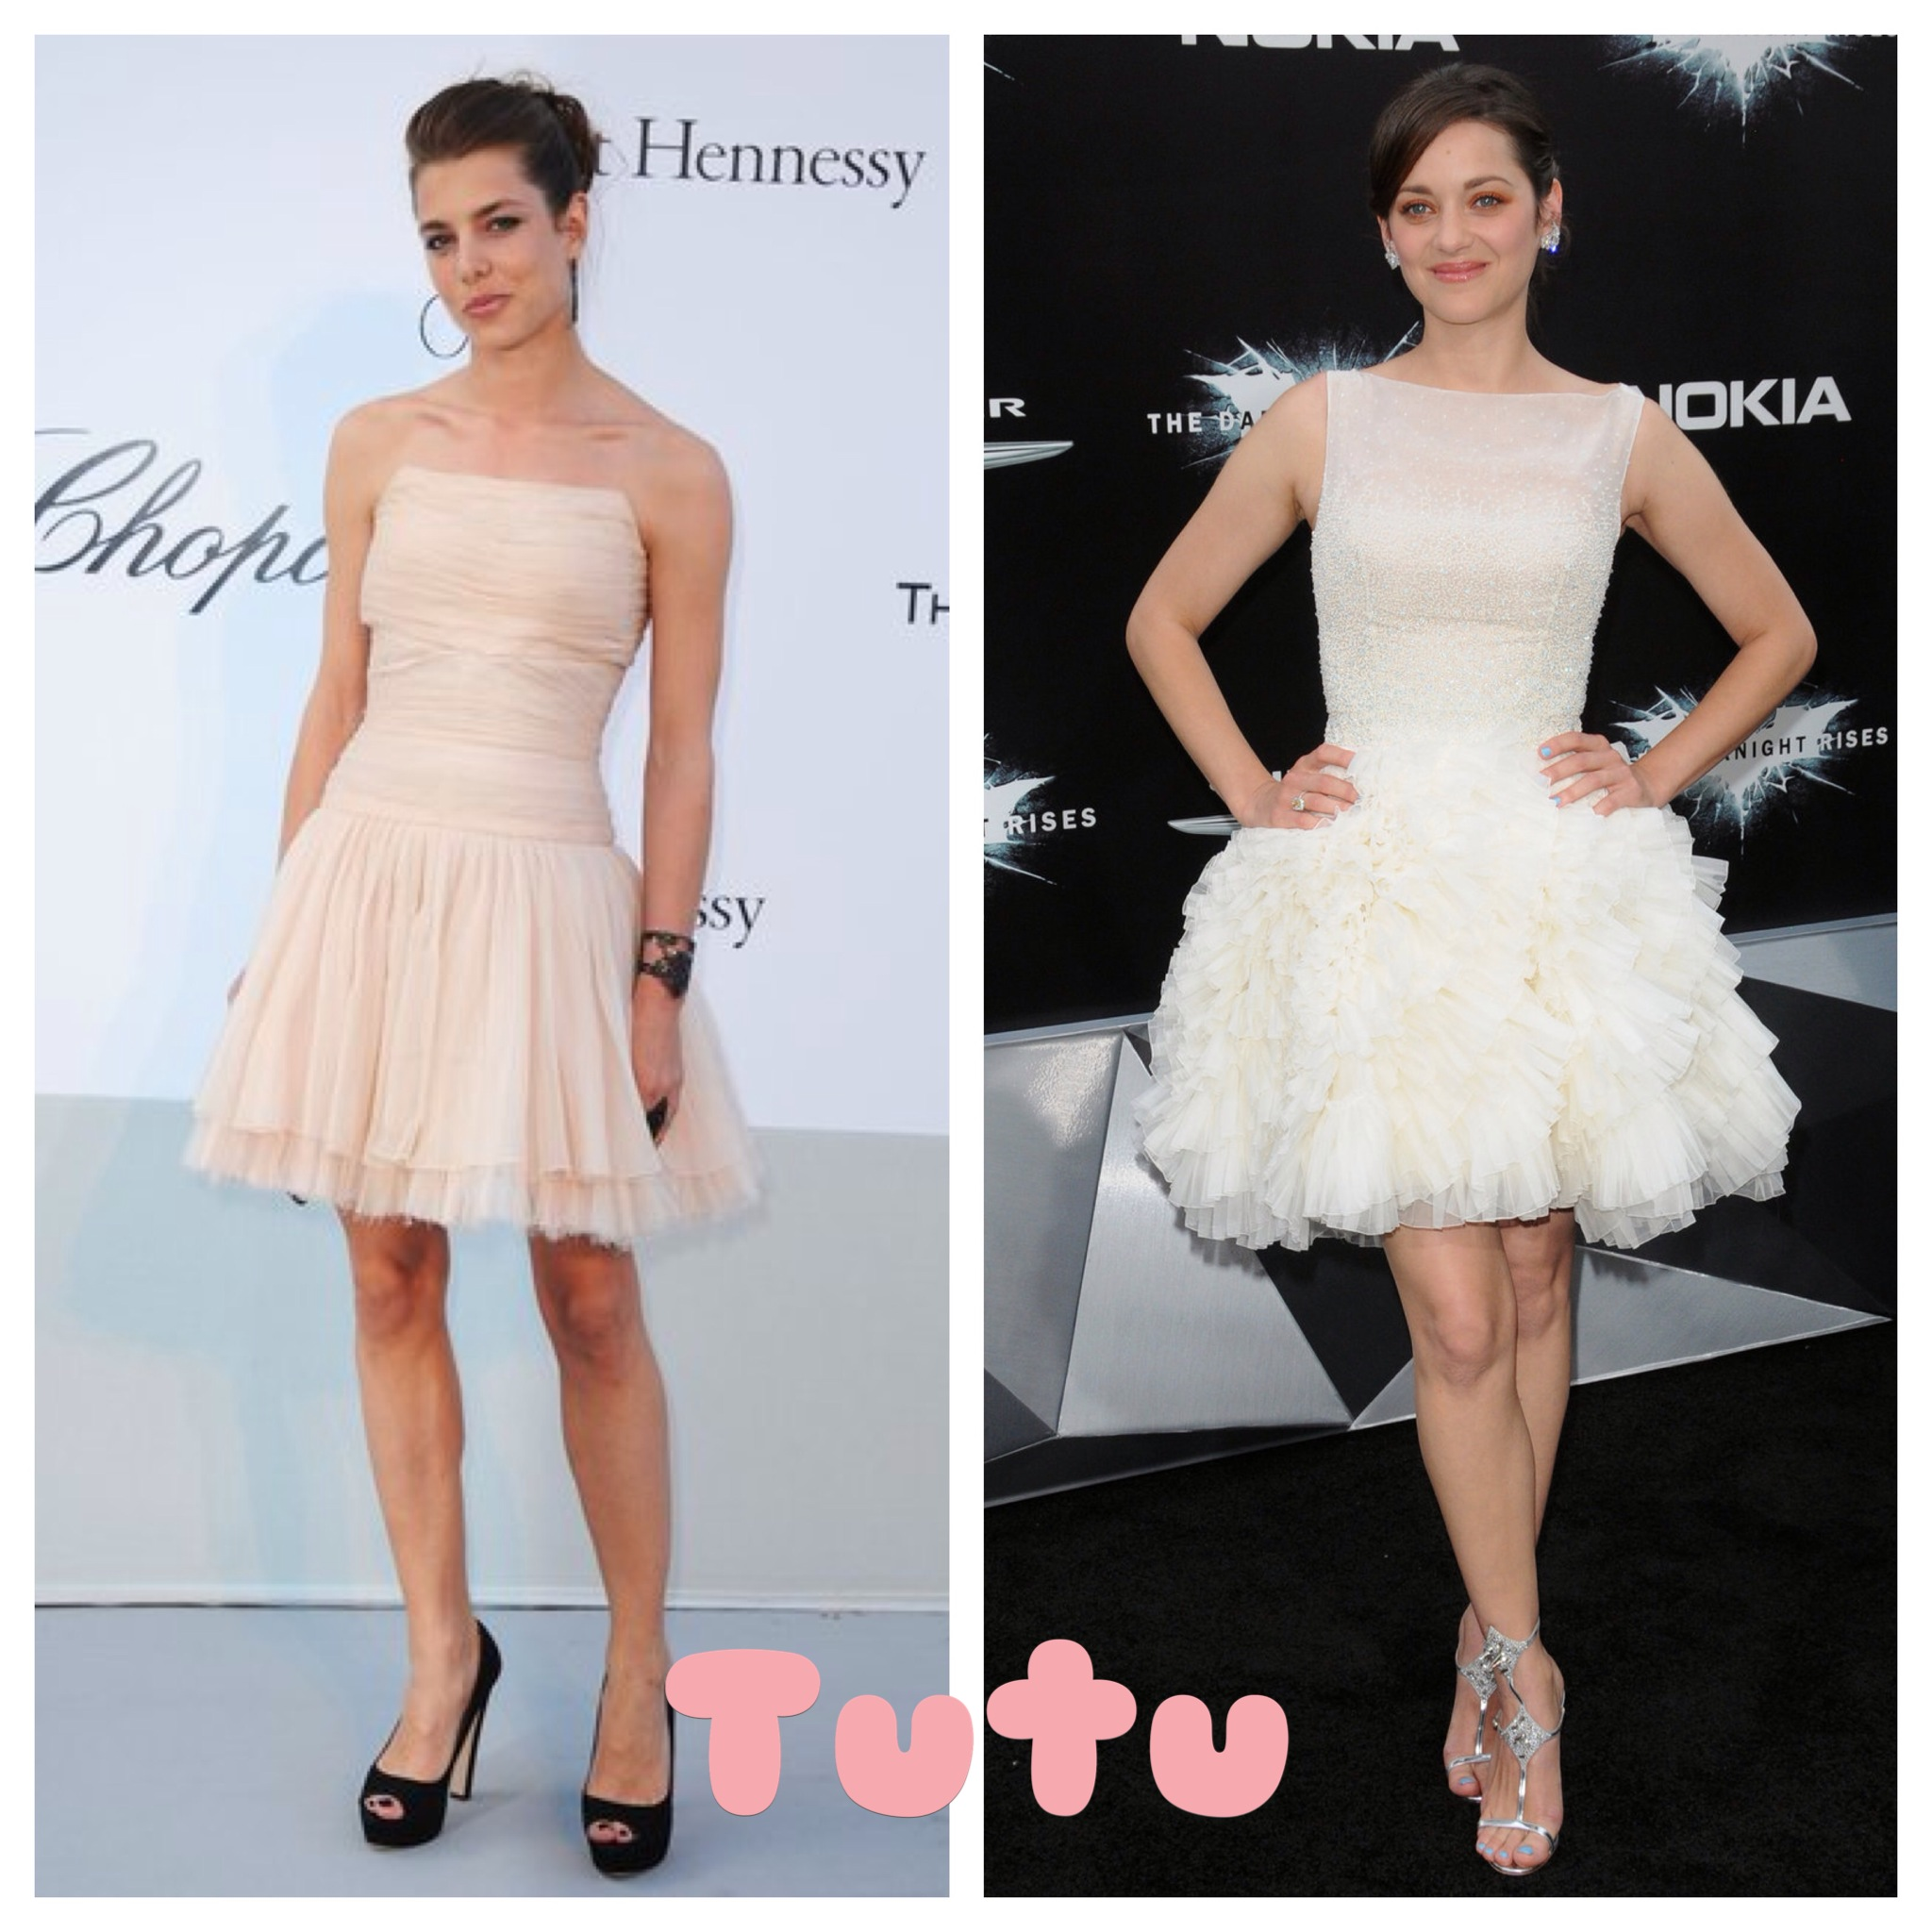 French Chic: Marion Cotillard and Charlotte Casiraghi in tutu dresses